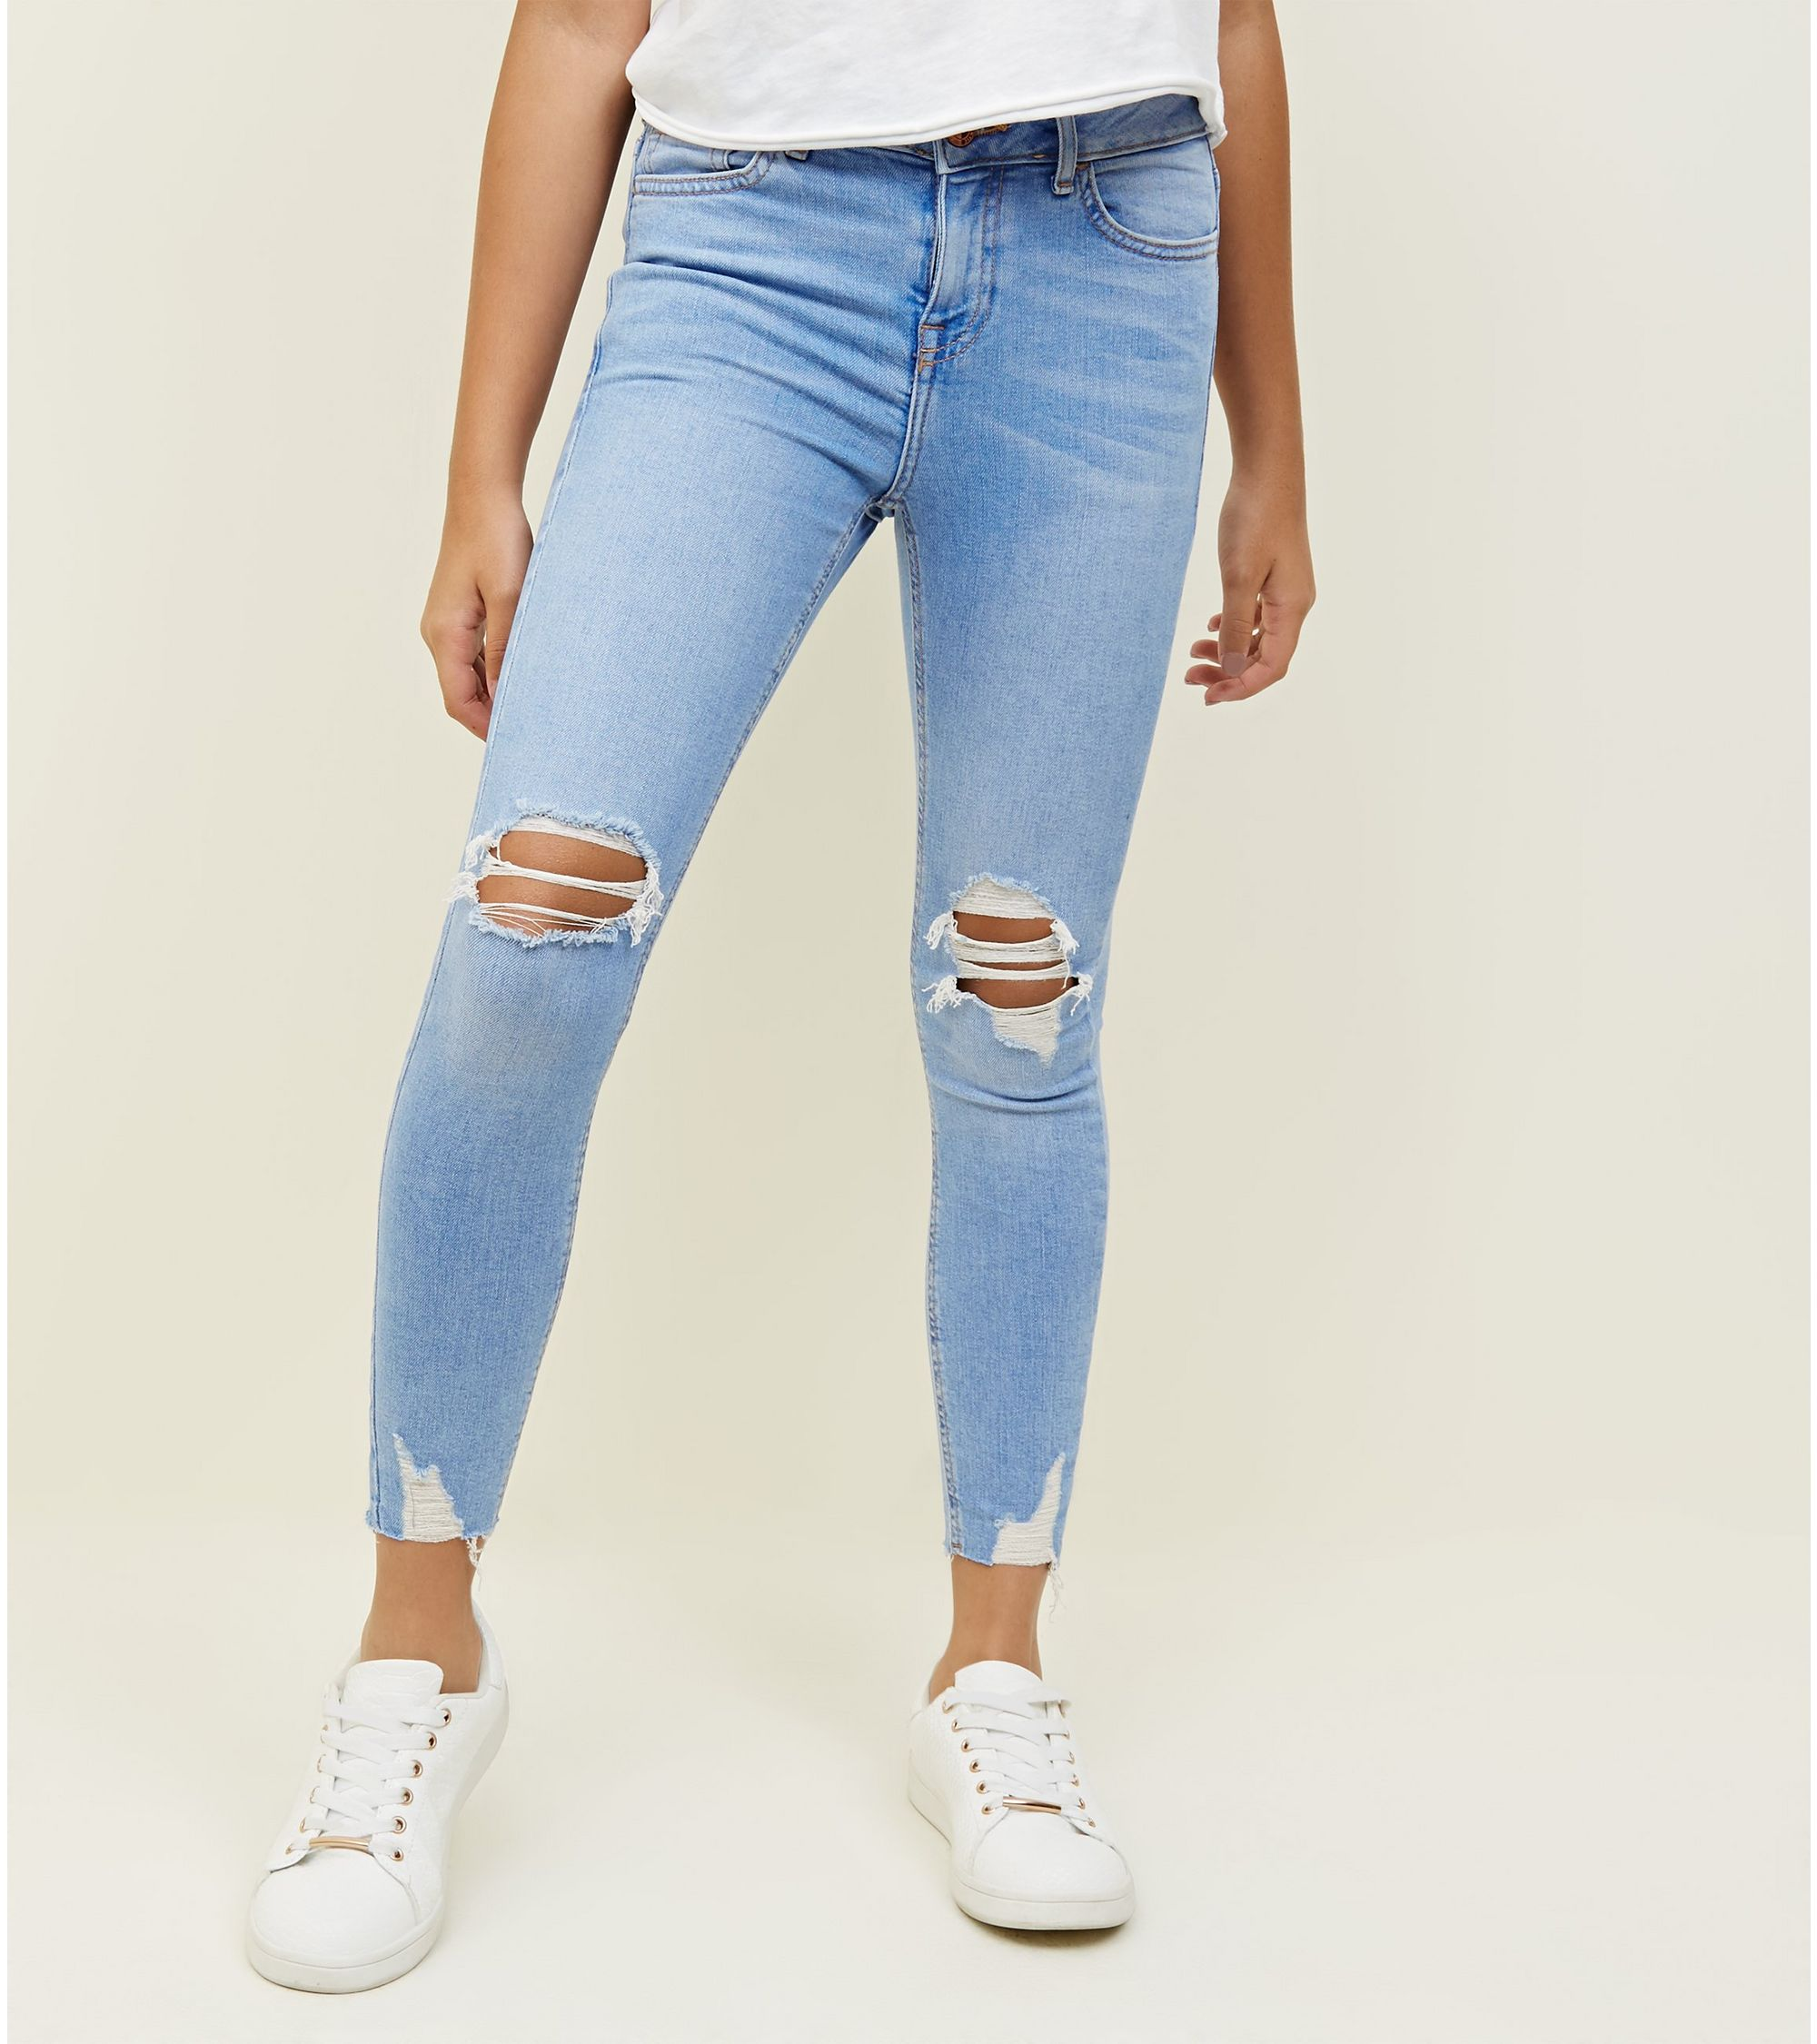 159135a09625 New Look Girls Pale Blue Bleach Wash Ripped Skinny Jeans at £22.99 ...